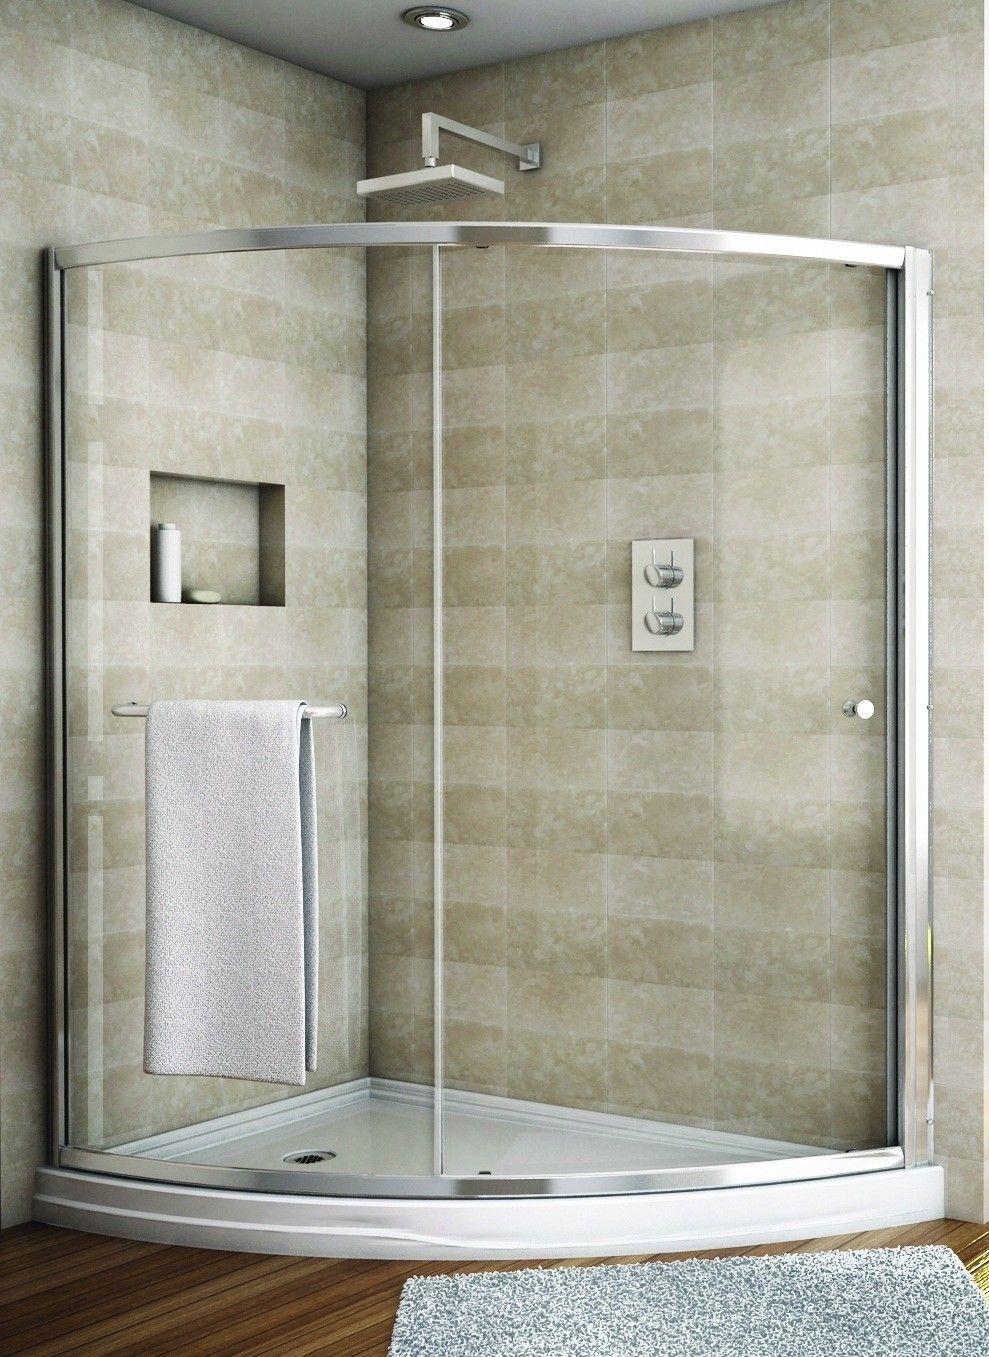 Fleurco Banyo Amalfi Slice Curved Sliding Frameless Shower Door ...